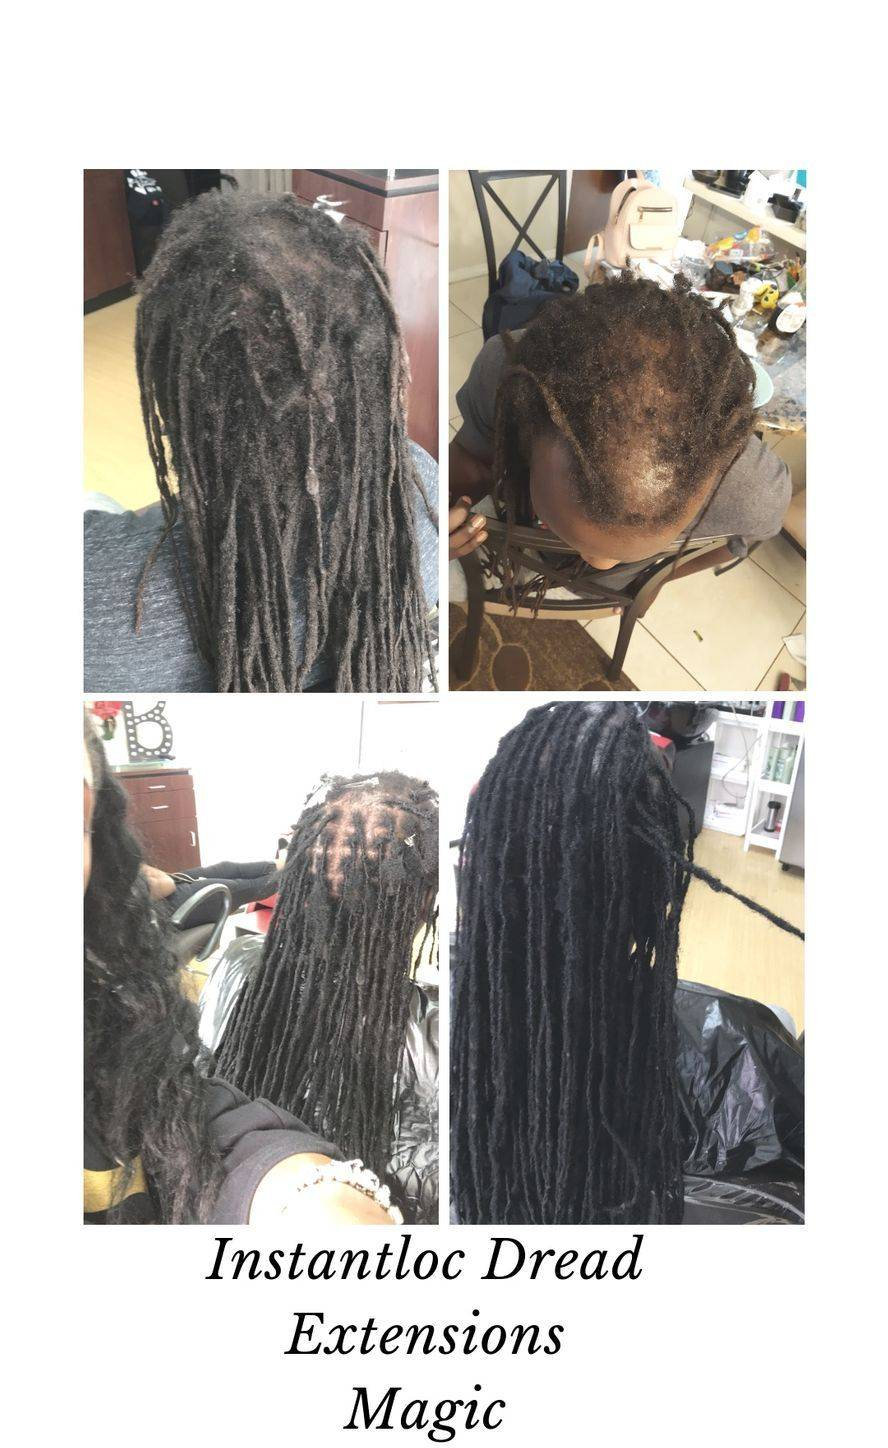 Repair clients who had dreadlocks for years of miscare and breakage client had a hair transformation by Bee relocating dreadlocks to another location where it is more needed.